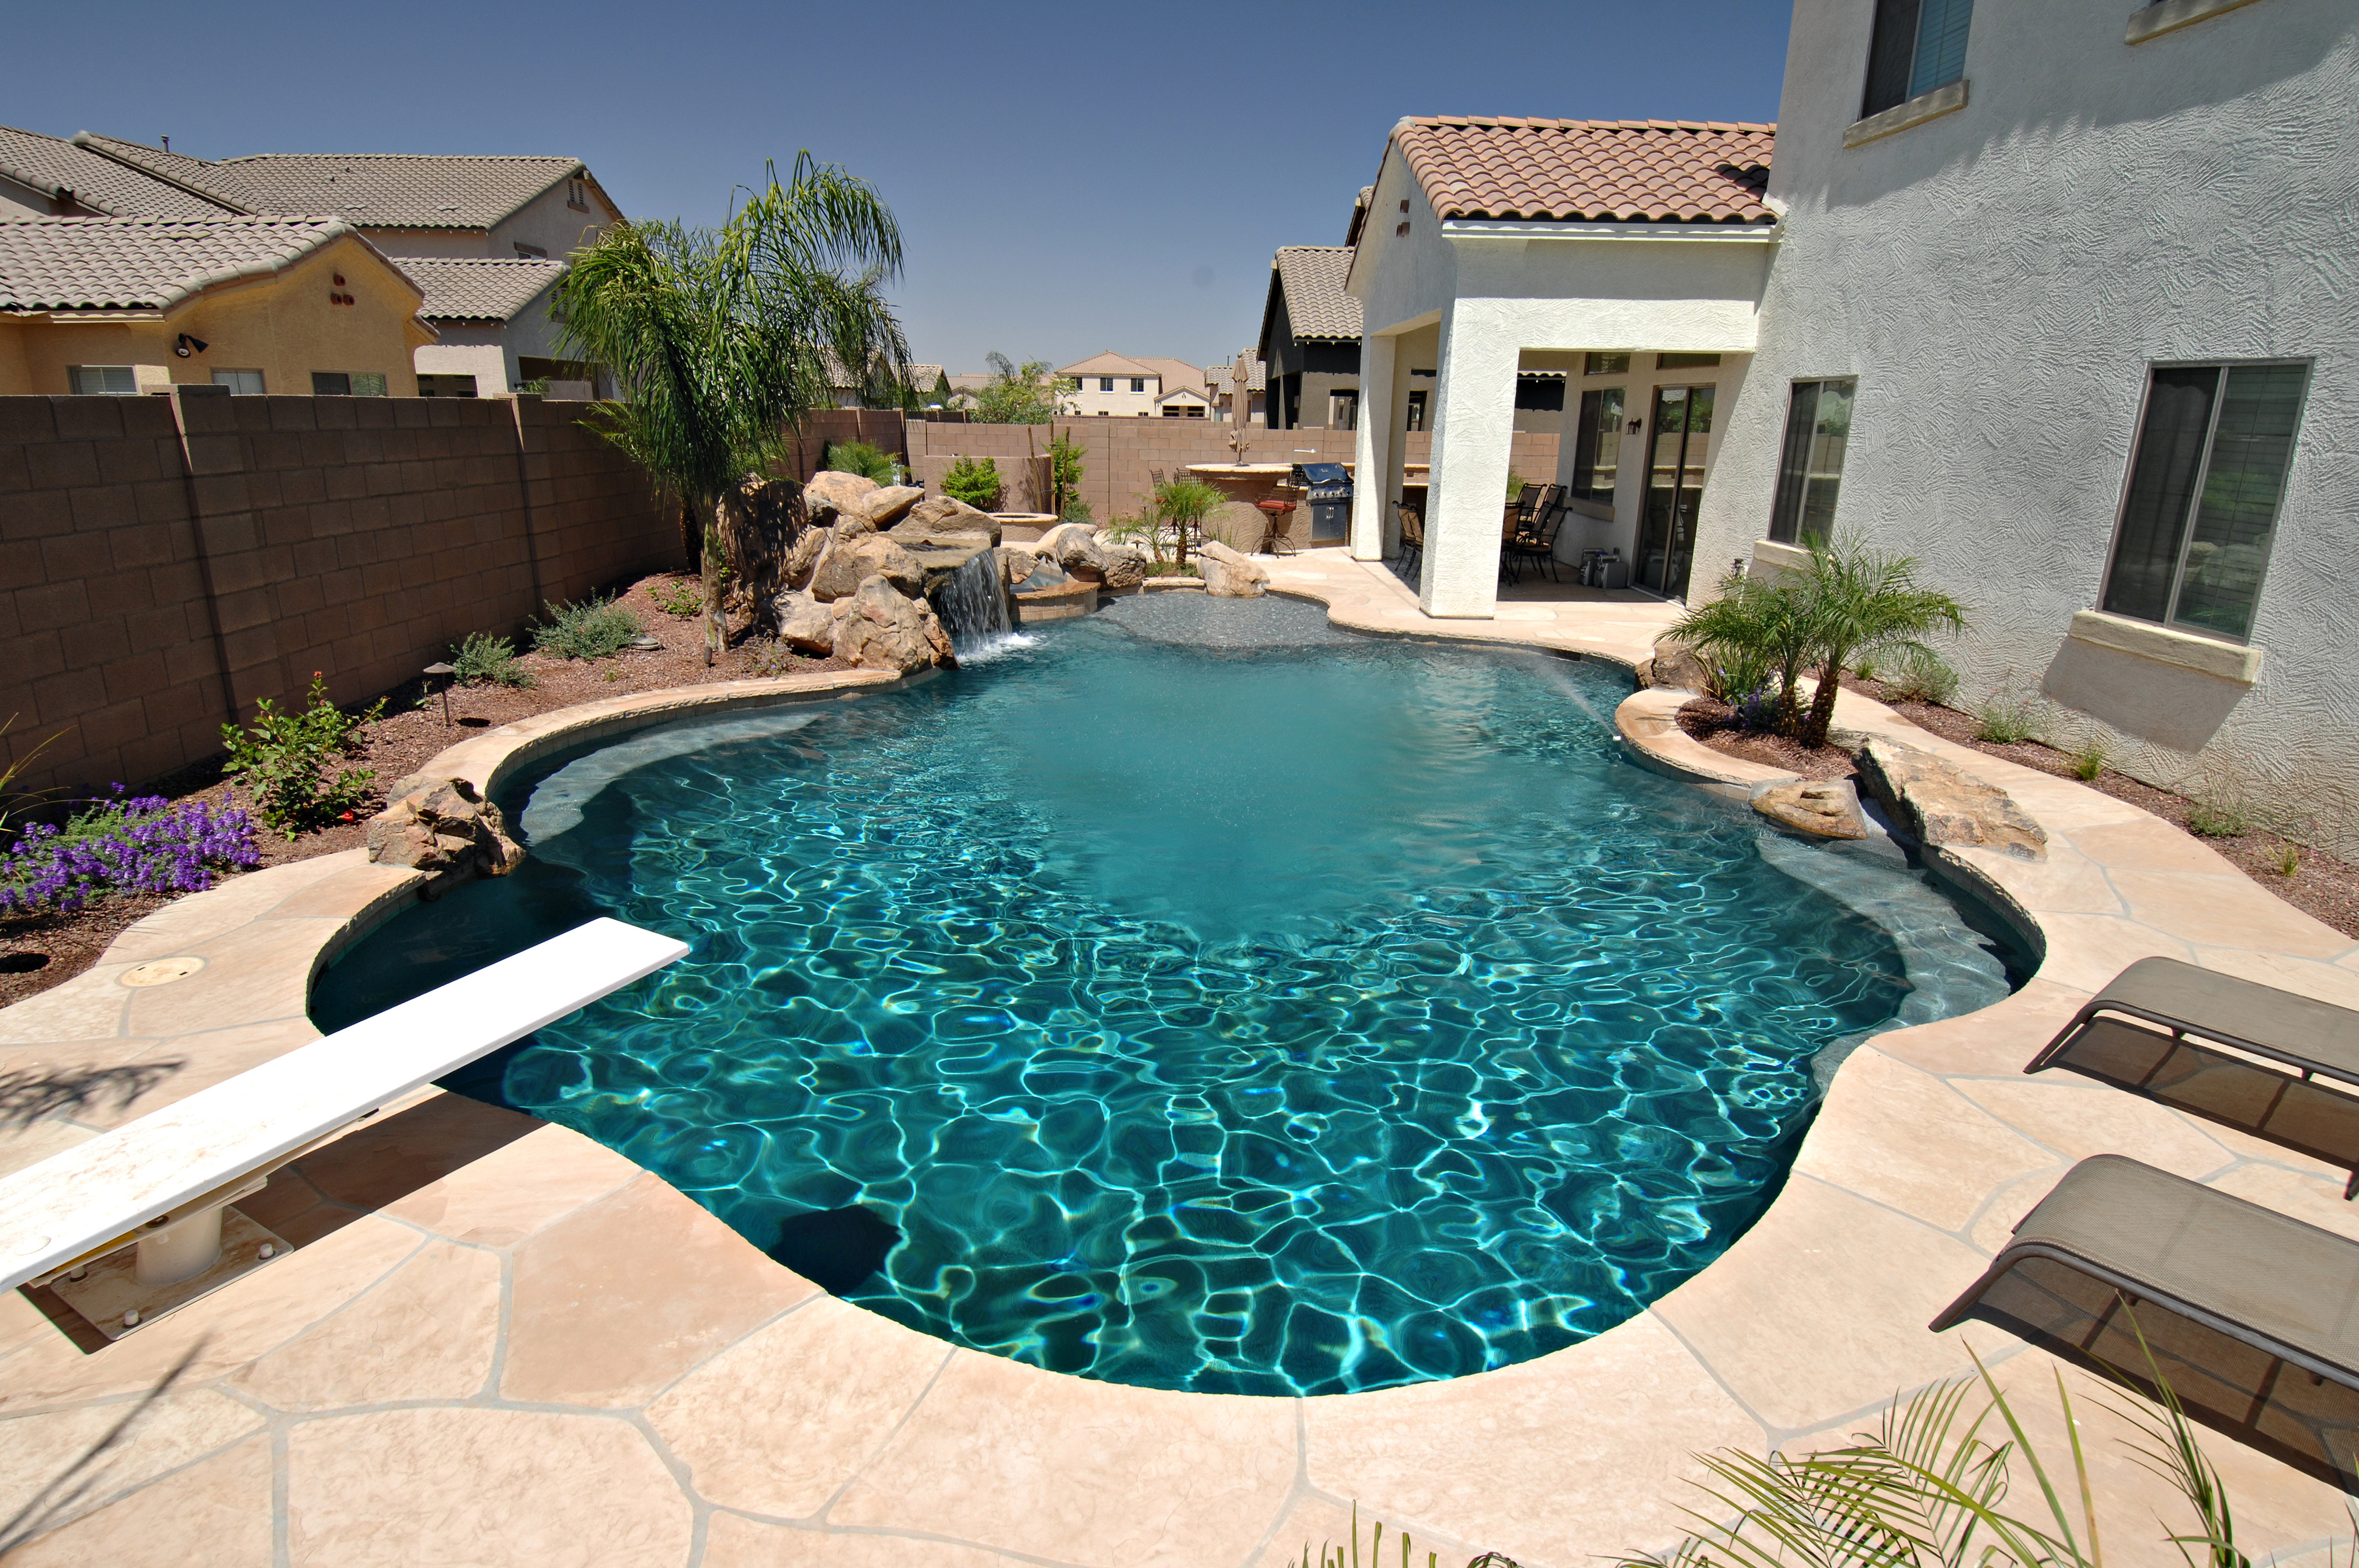 Small Backyards with Pools | Average Cost of Inground Swimming Pool | Backyard Pool Designs